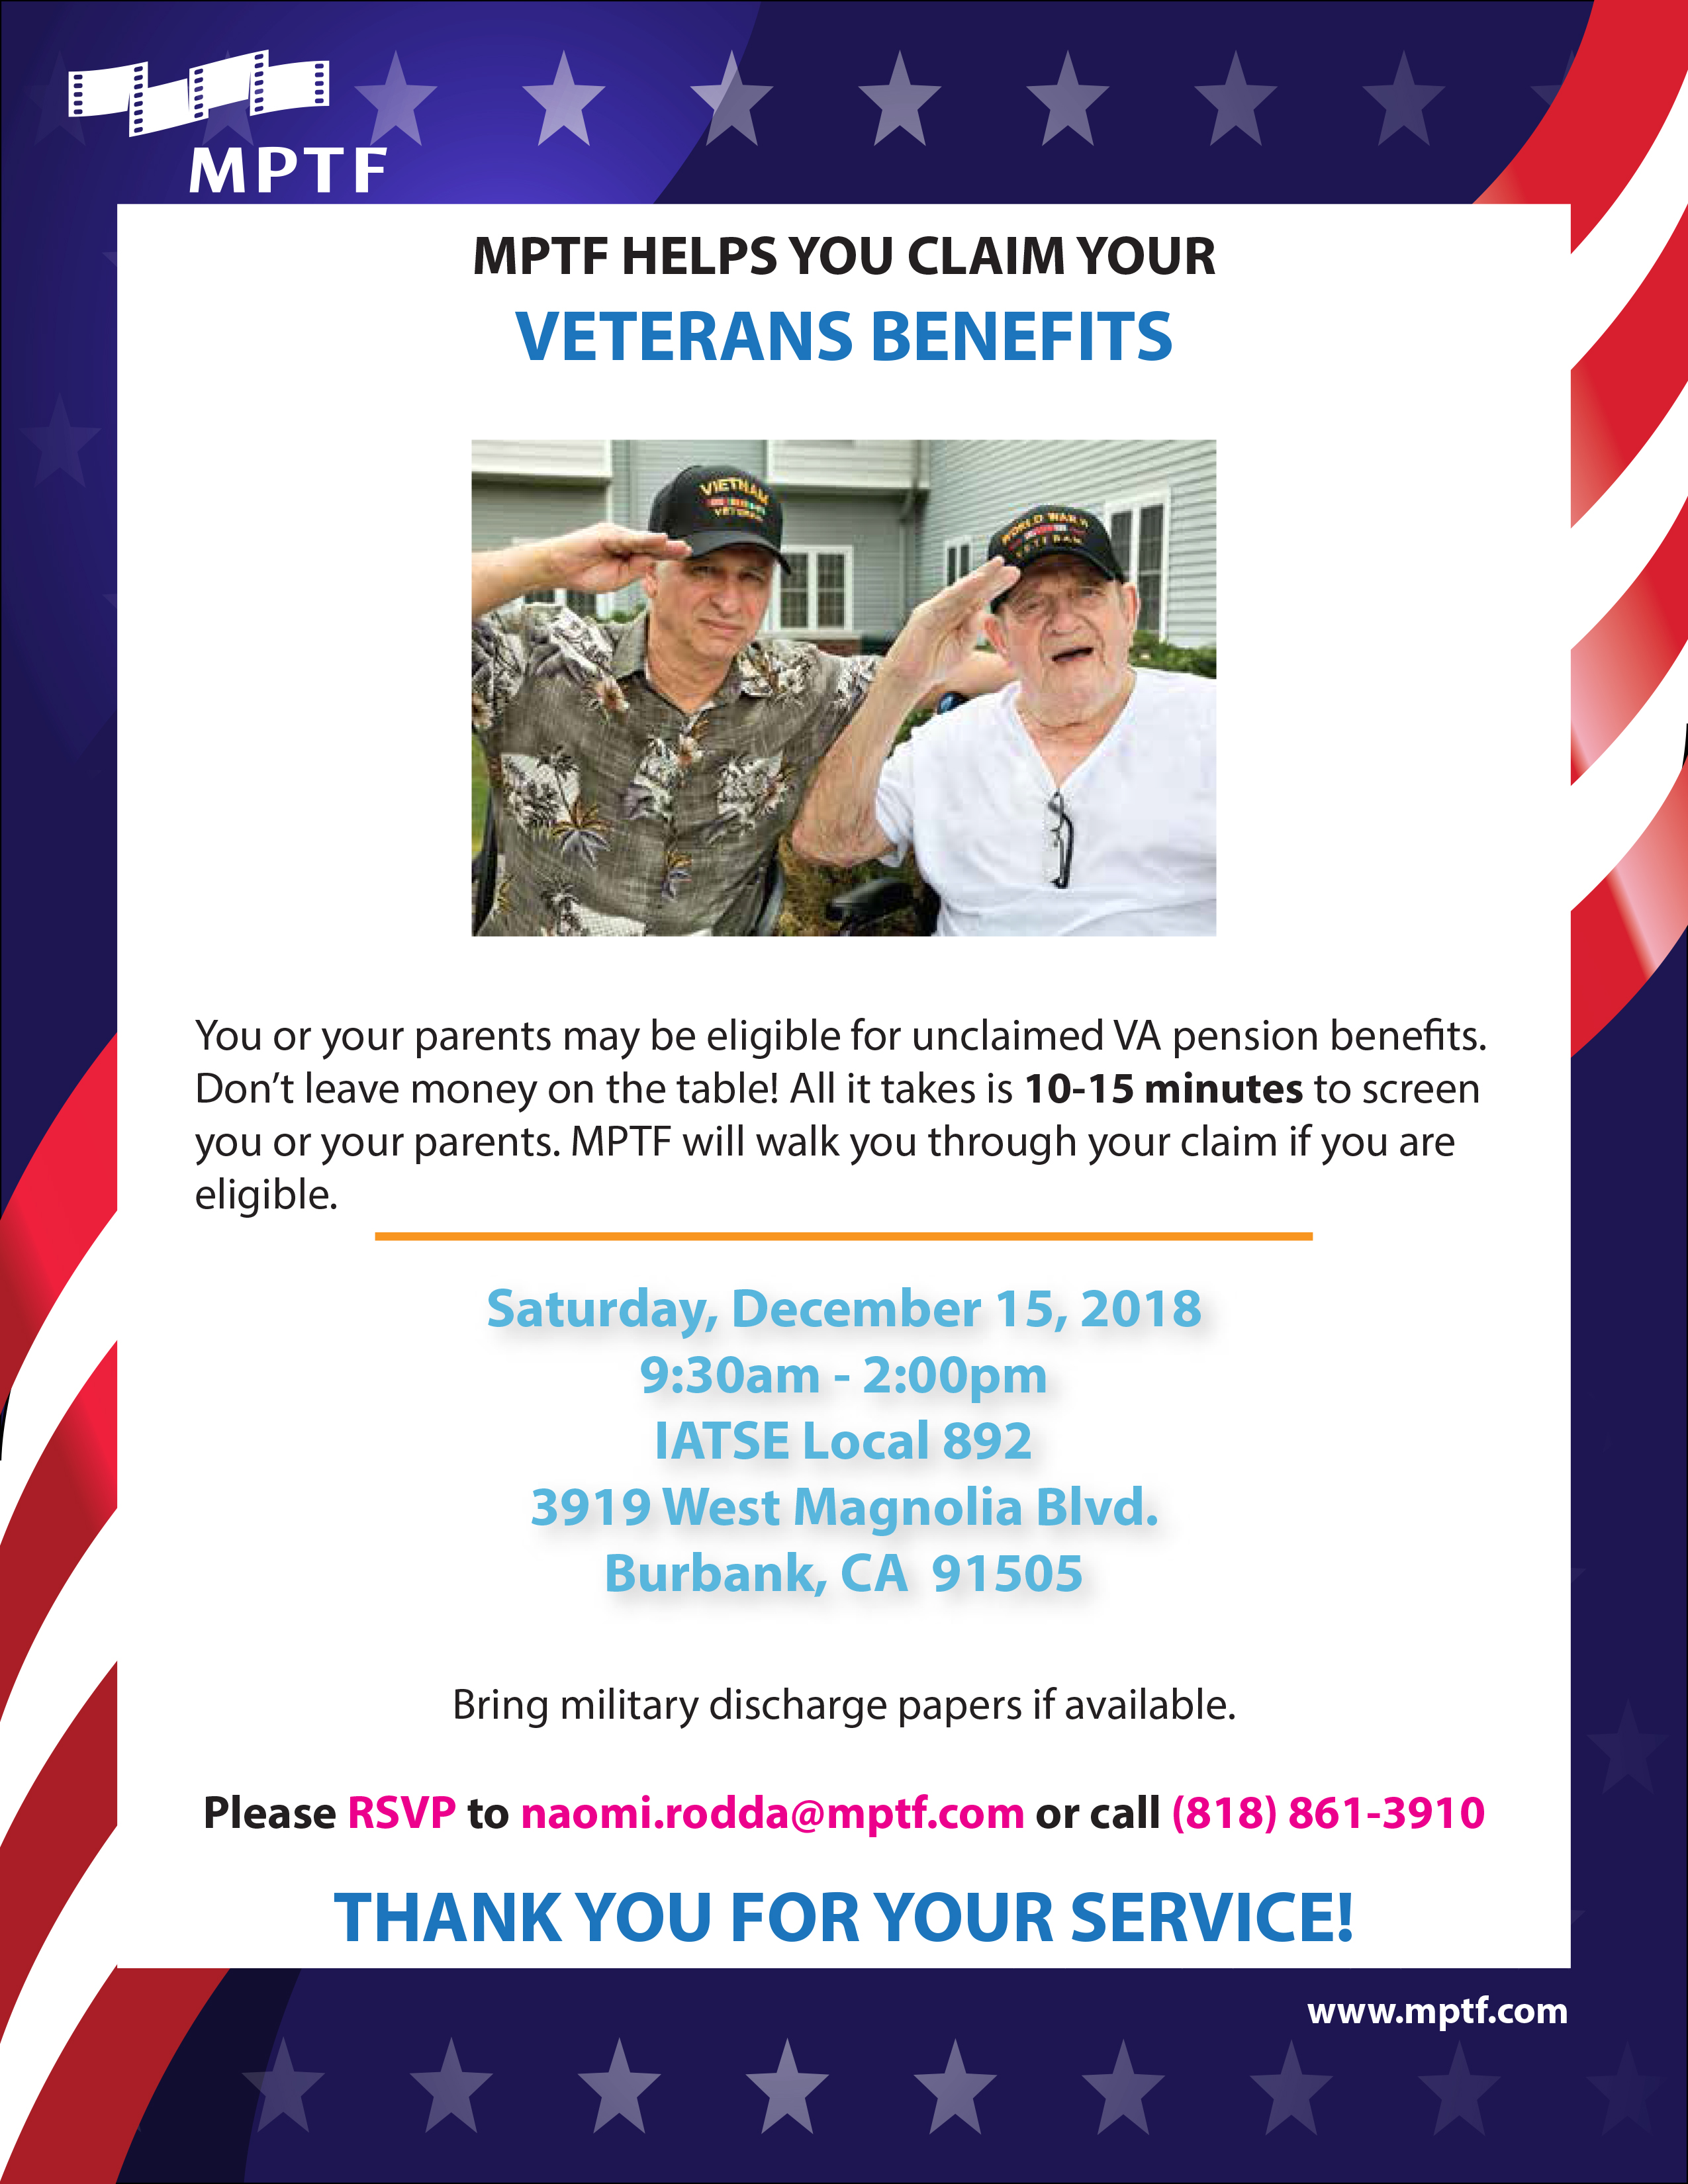 MPTF Helps you claim your Veterans Benefits